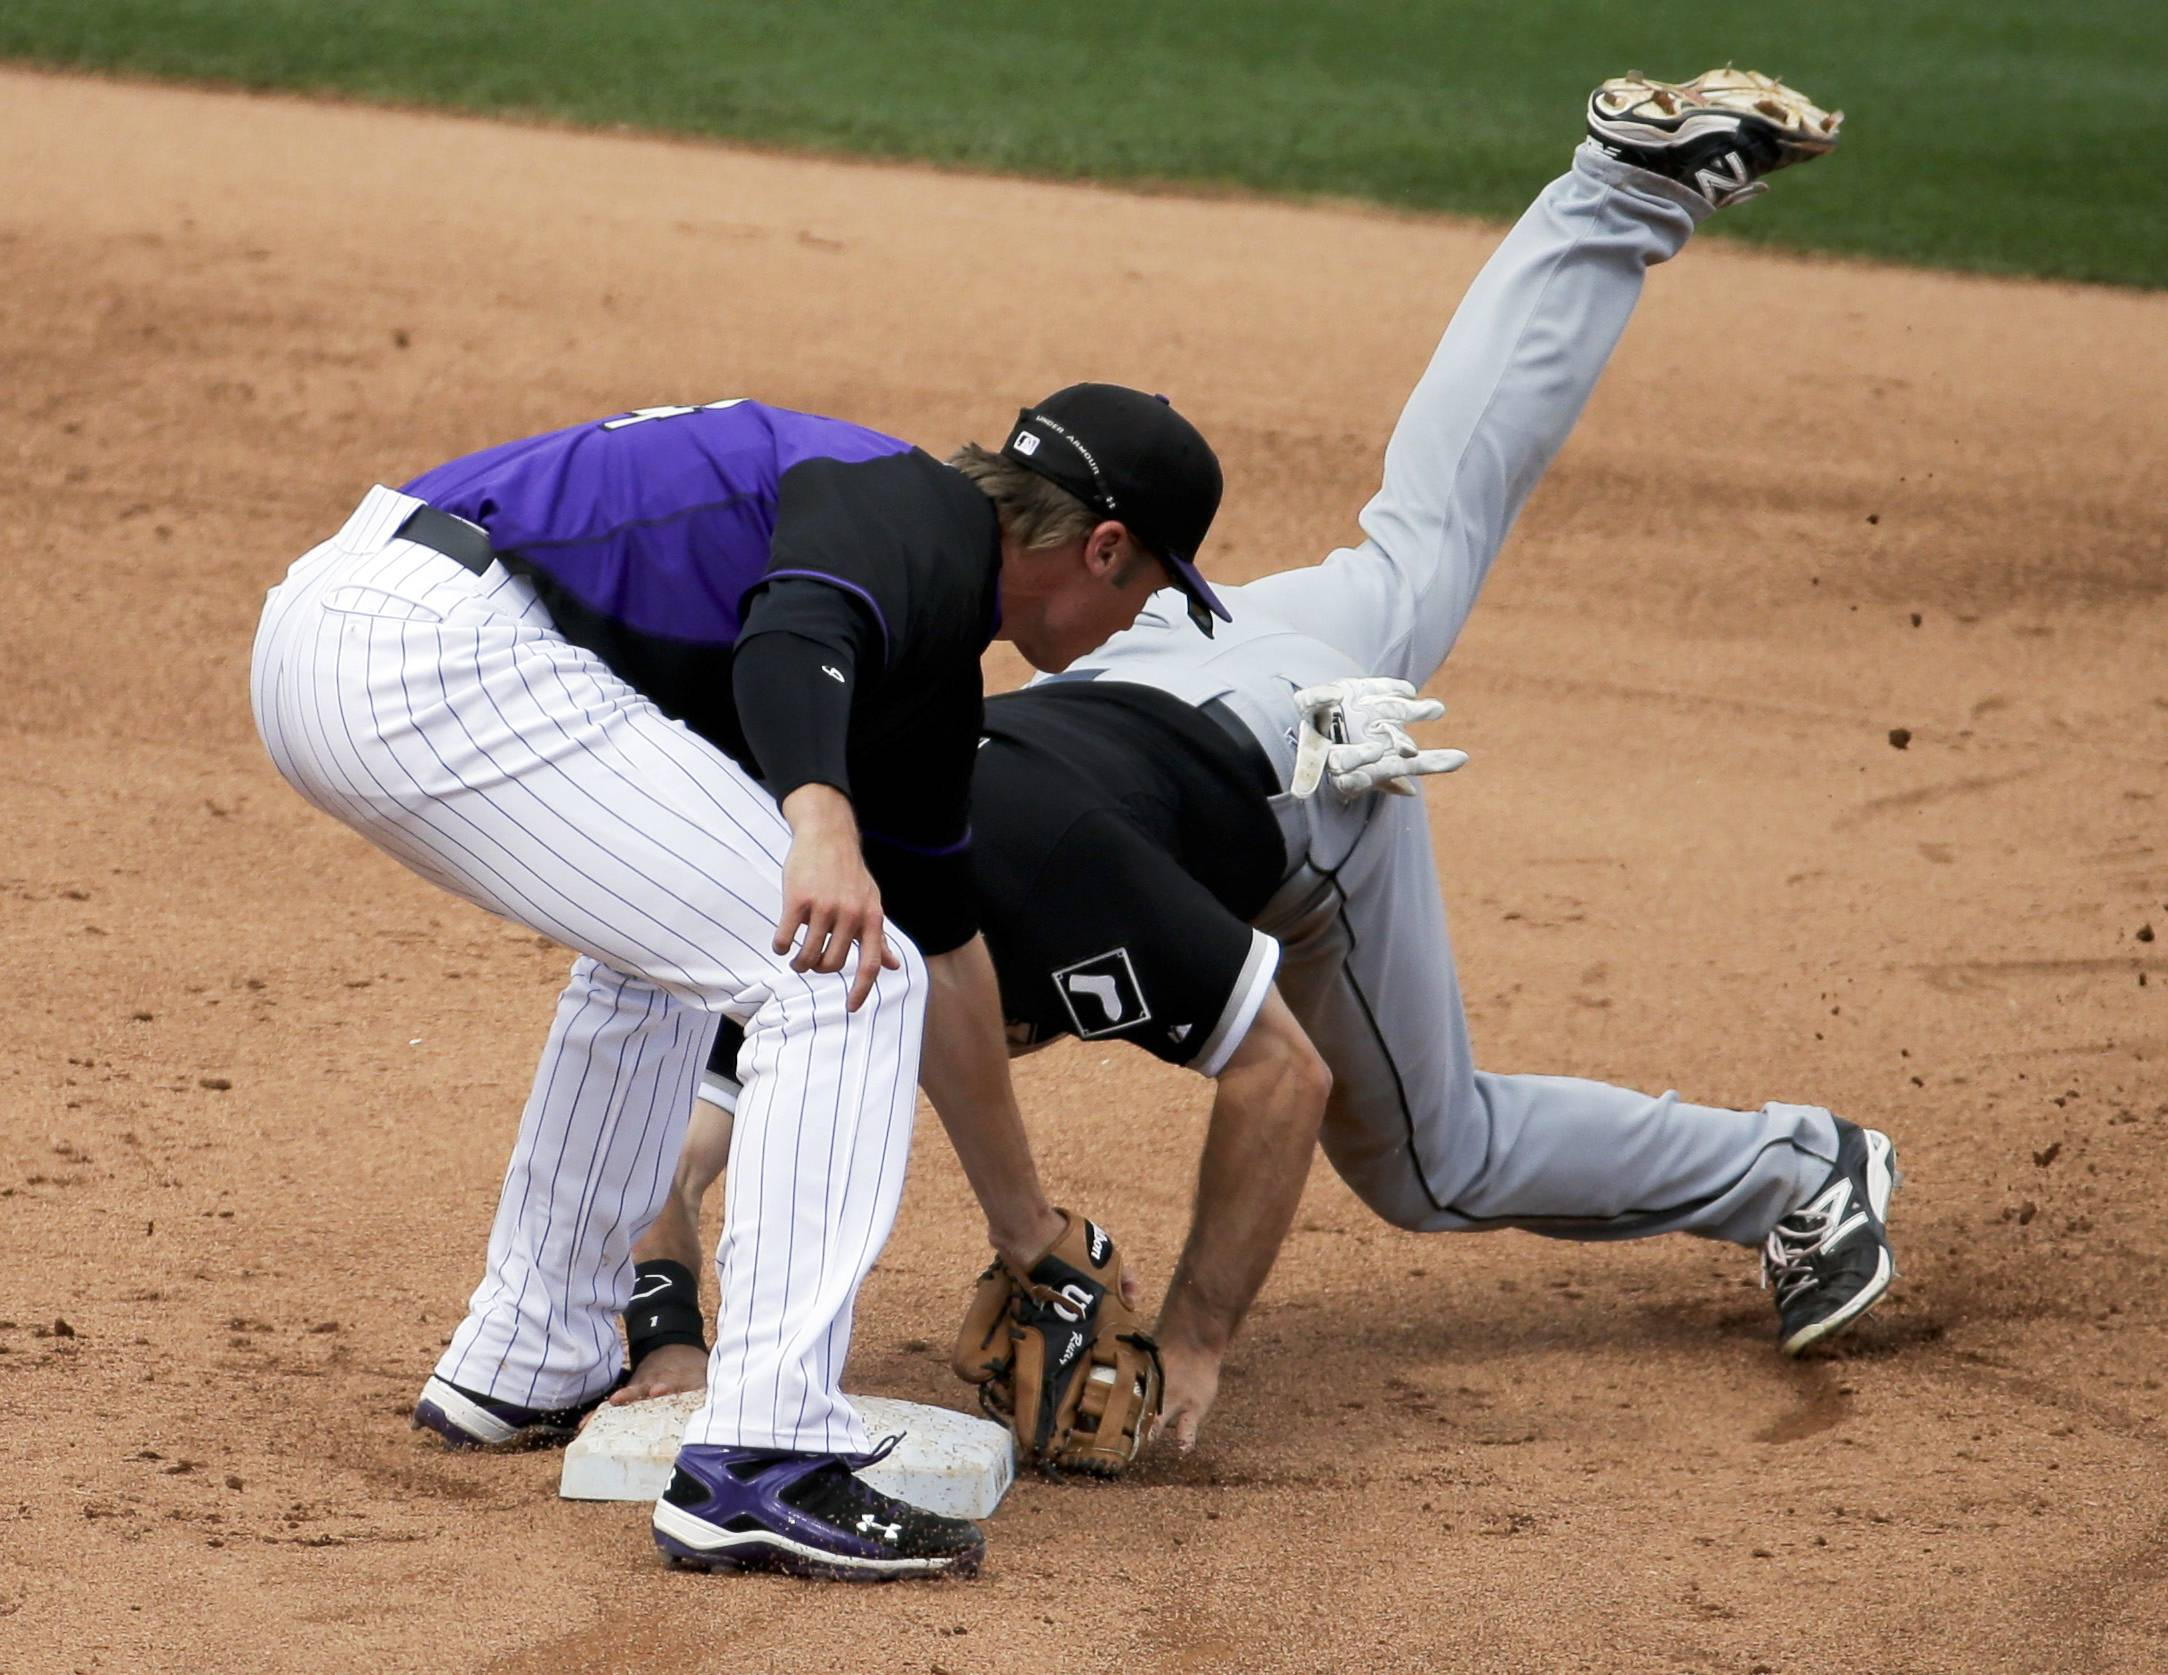 Chicago White Sox's Adam Eaton, right, is safe at second under the tag by Colorado Rockies shortstop Josh Rutledge during the sixth inning of a spring exhibition baseball game in Scottsdale, Ariz., Sunday, March 23, 2014. (AP Photo/Chris Carlson)